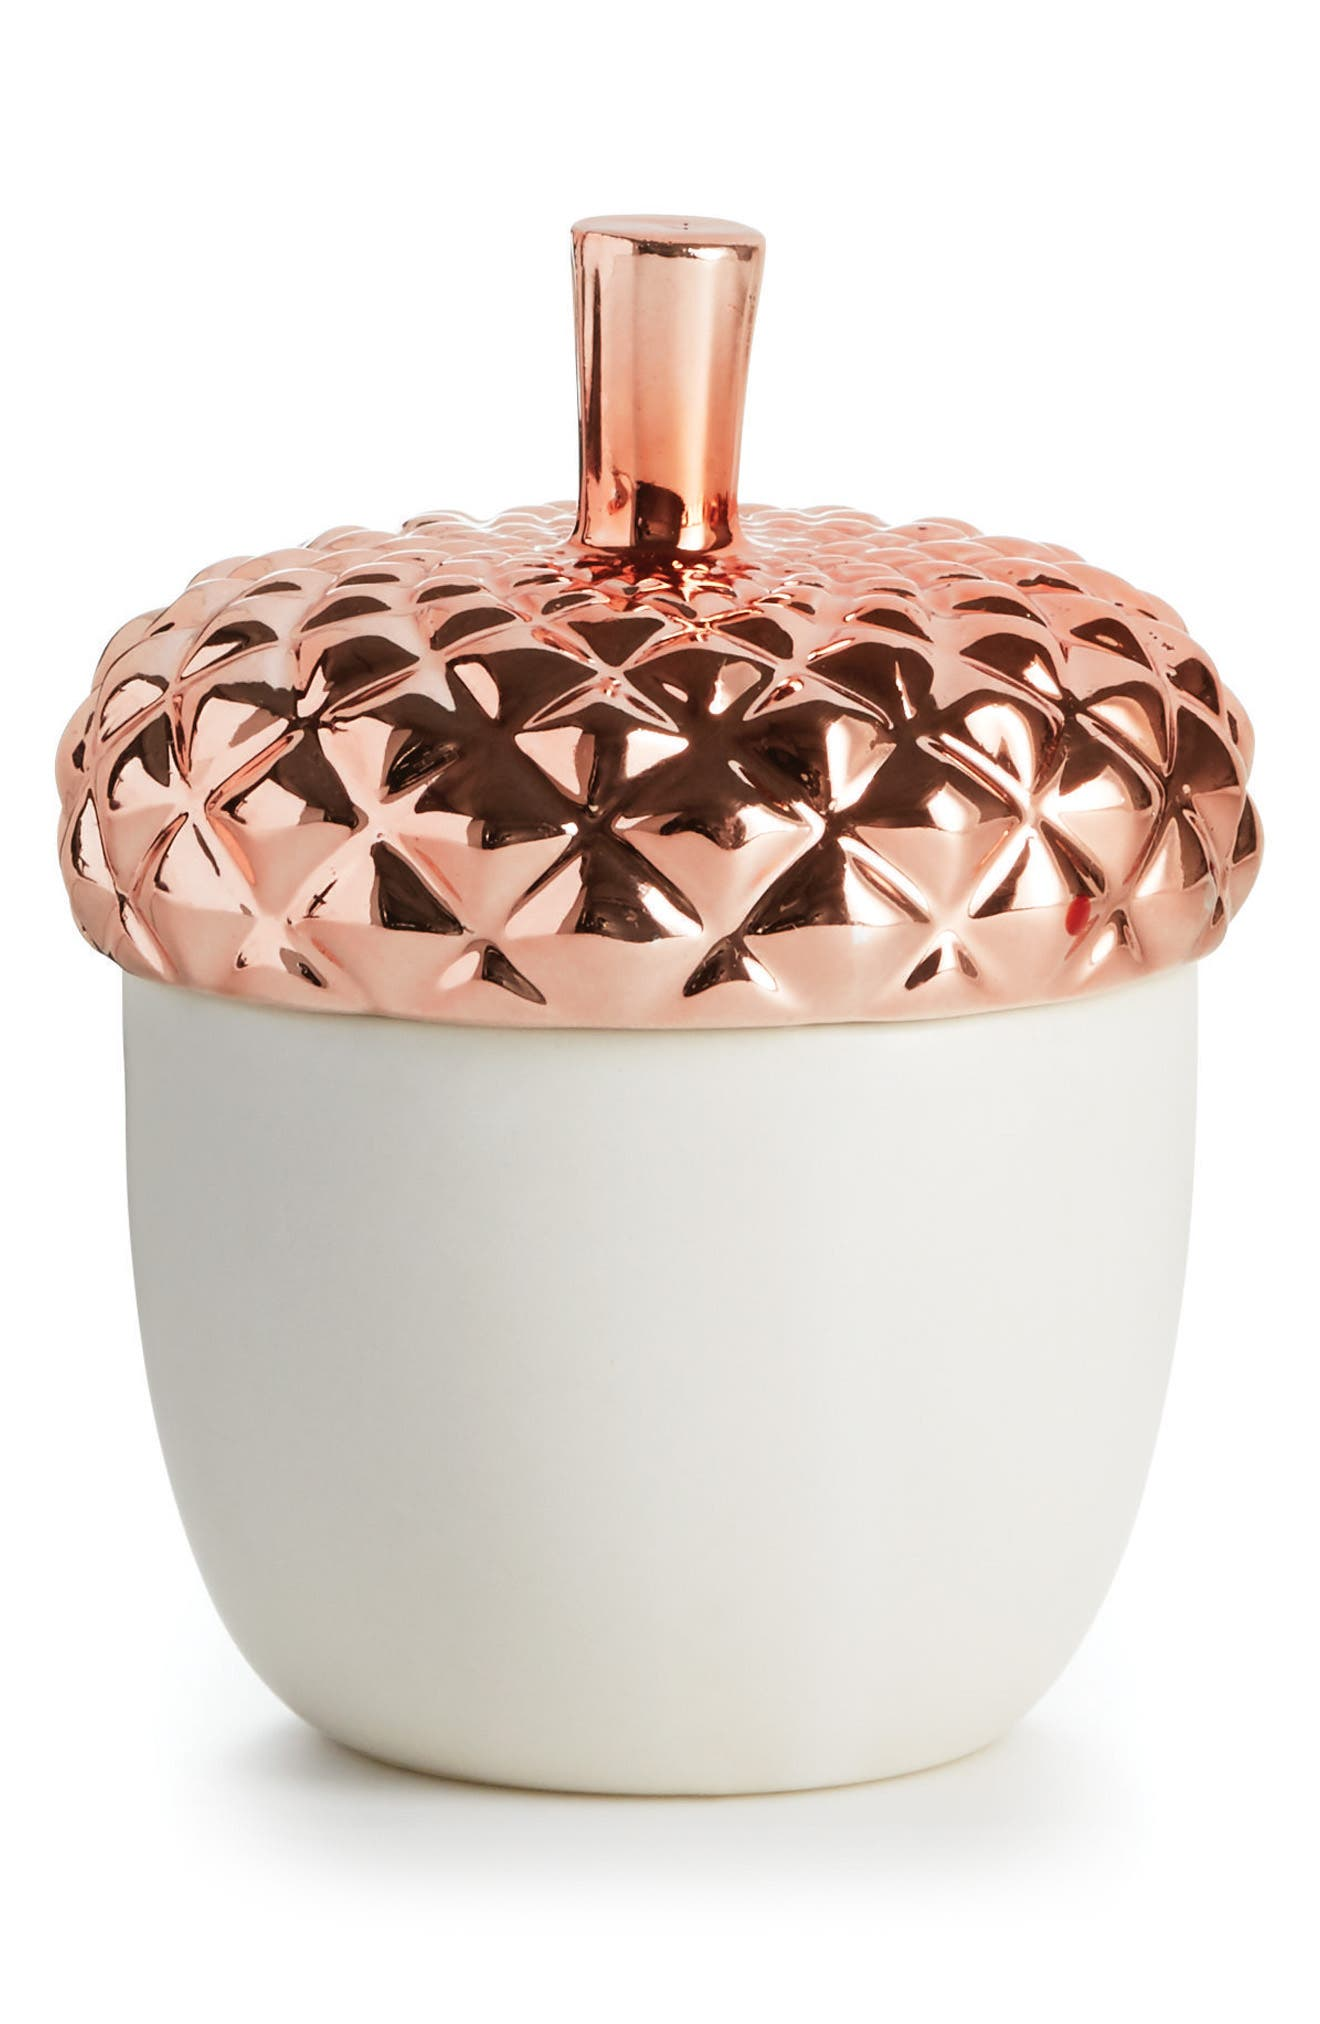 Copper Leaves Lidded Ceramic Candle,                             Main thumbnail 1, color,                             CHESTNUTS/ CINNAMON